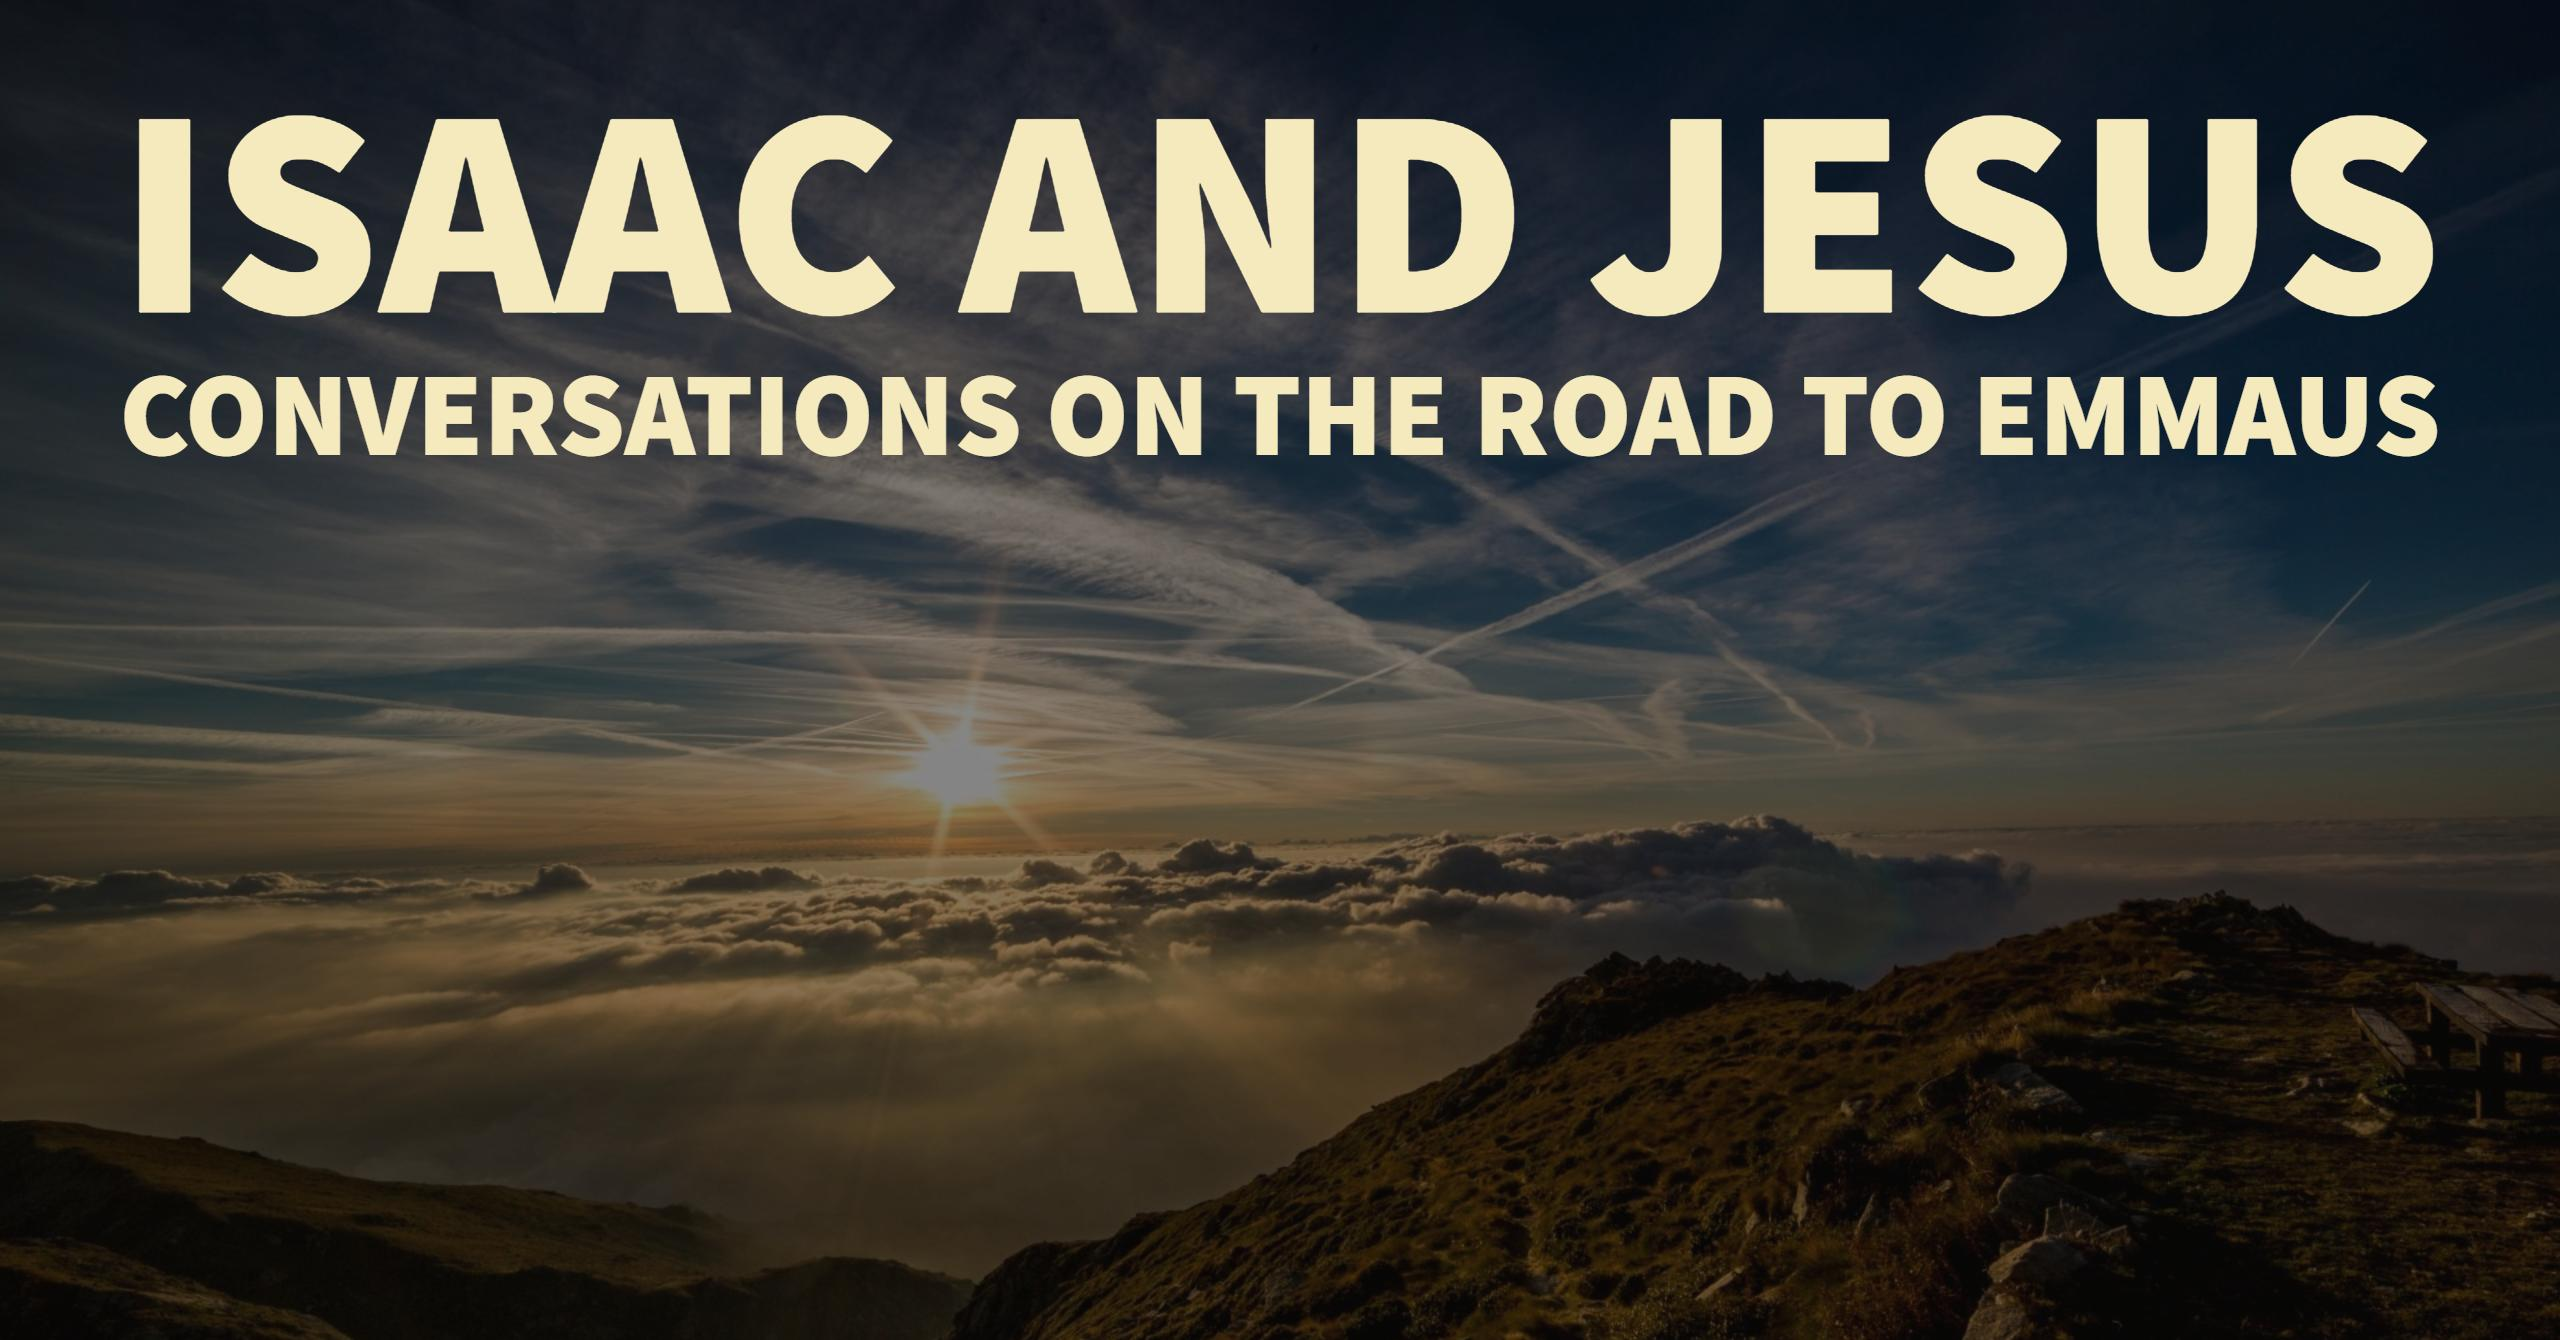 Isaac and Jesus